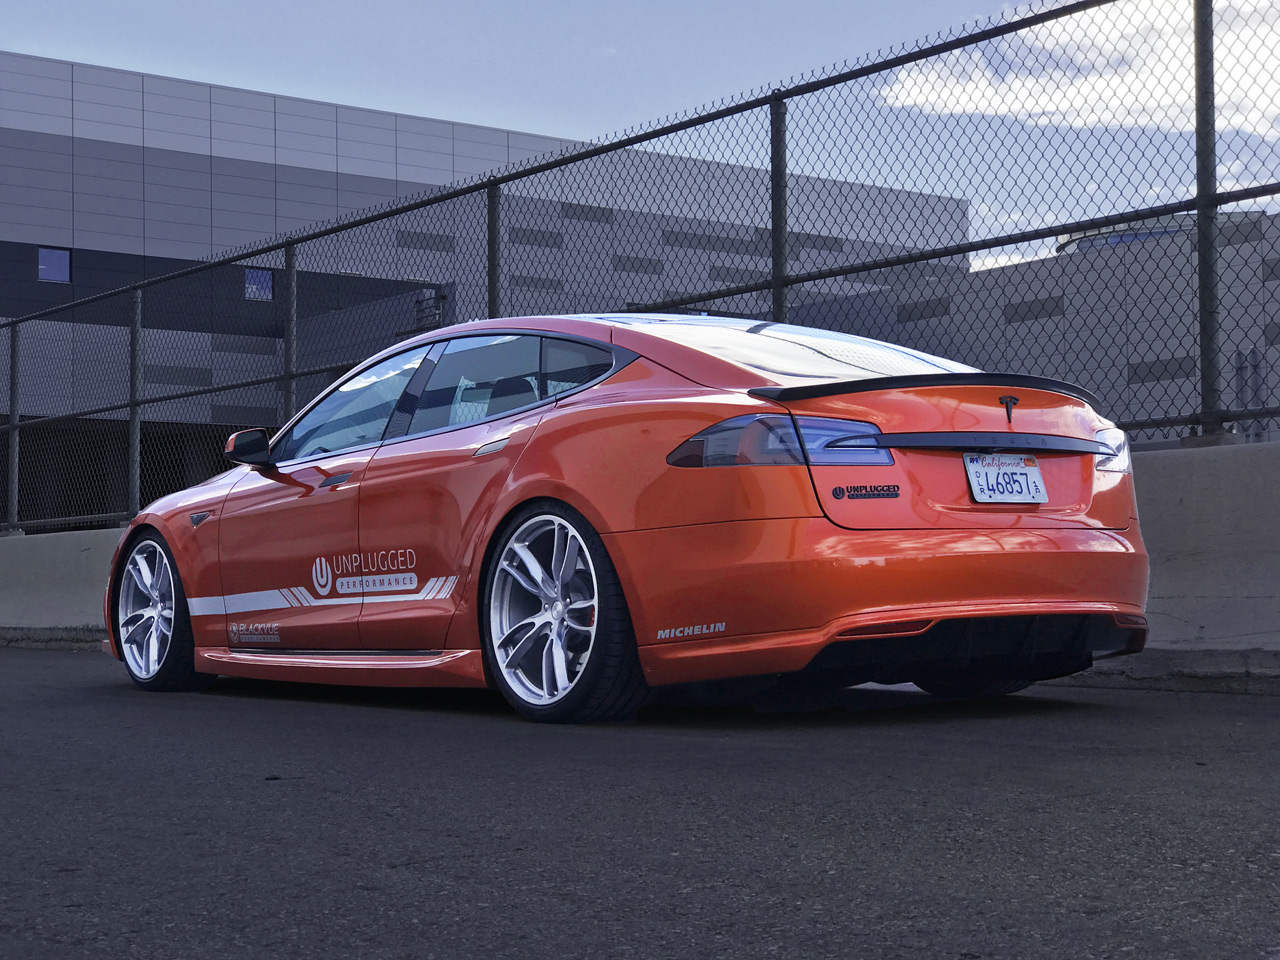 Unplugged-Performance-Model-S-Demo-Car-Orange---Rear-3-4.jpg